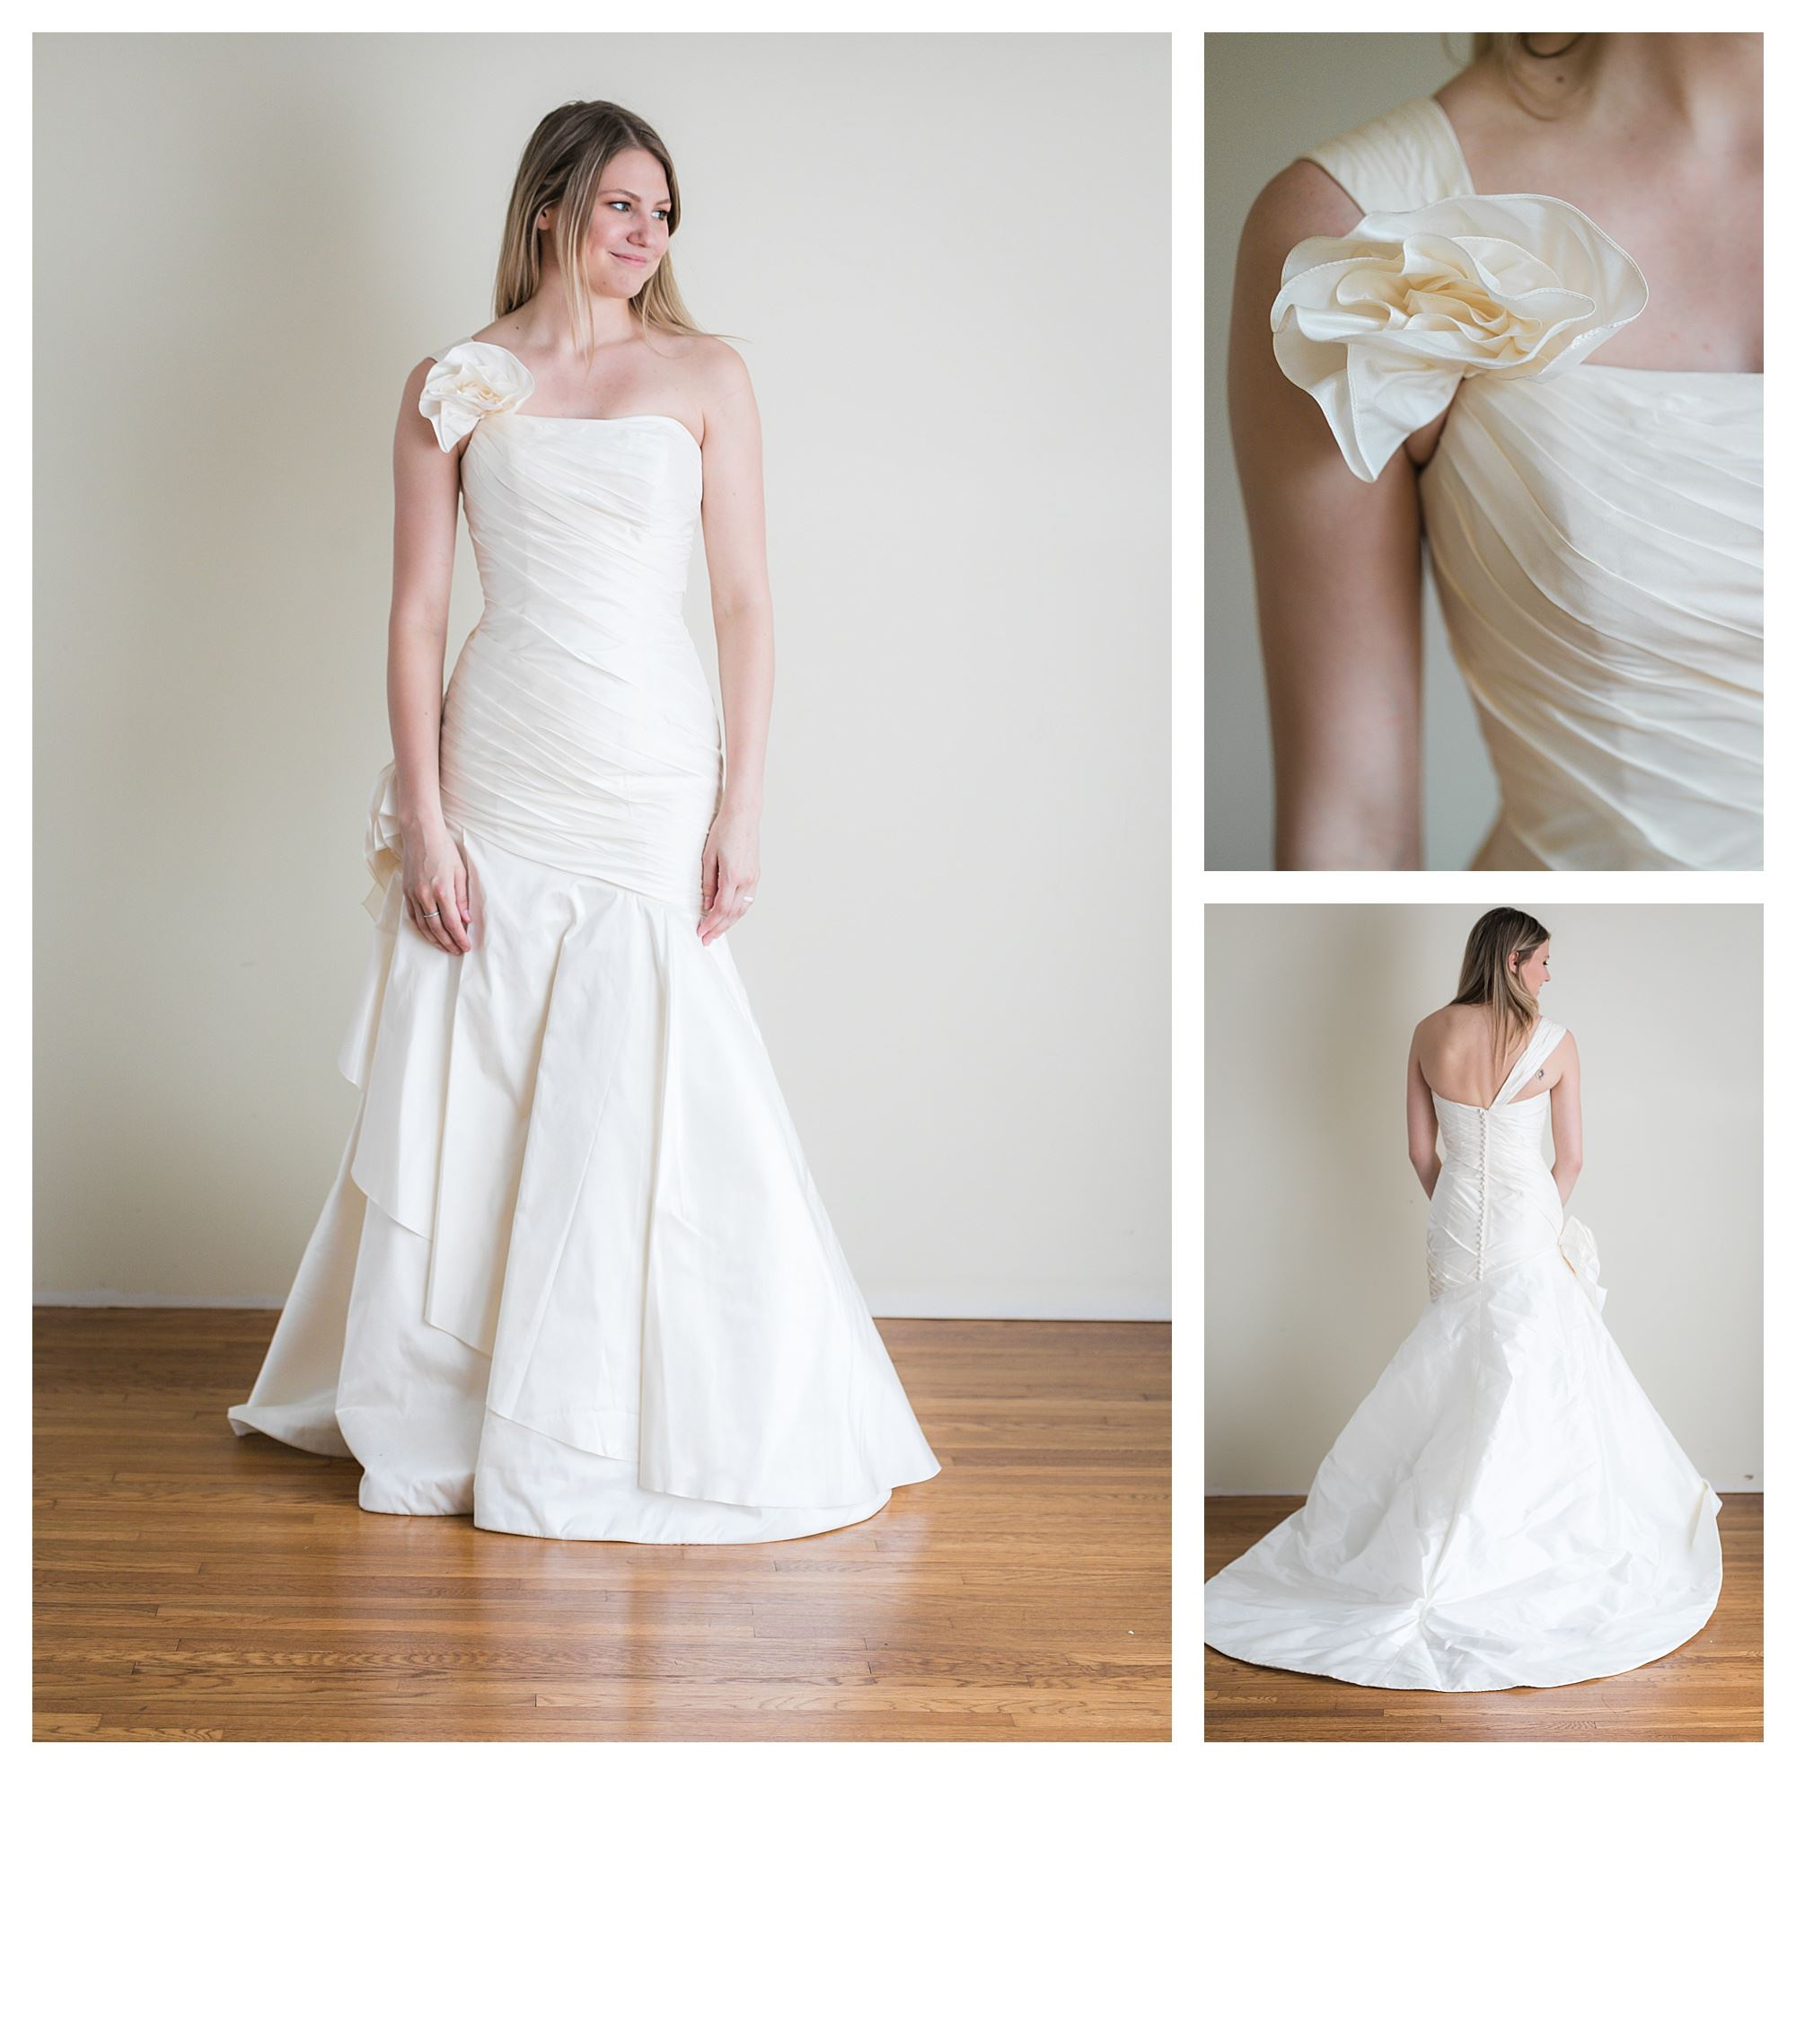 Sunshine - Size 6 - Ivory - Originally priced $999 - Sample box price $699